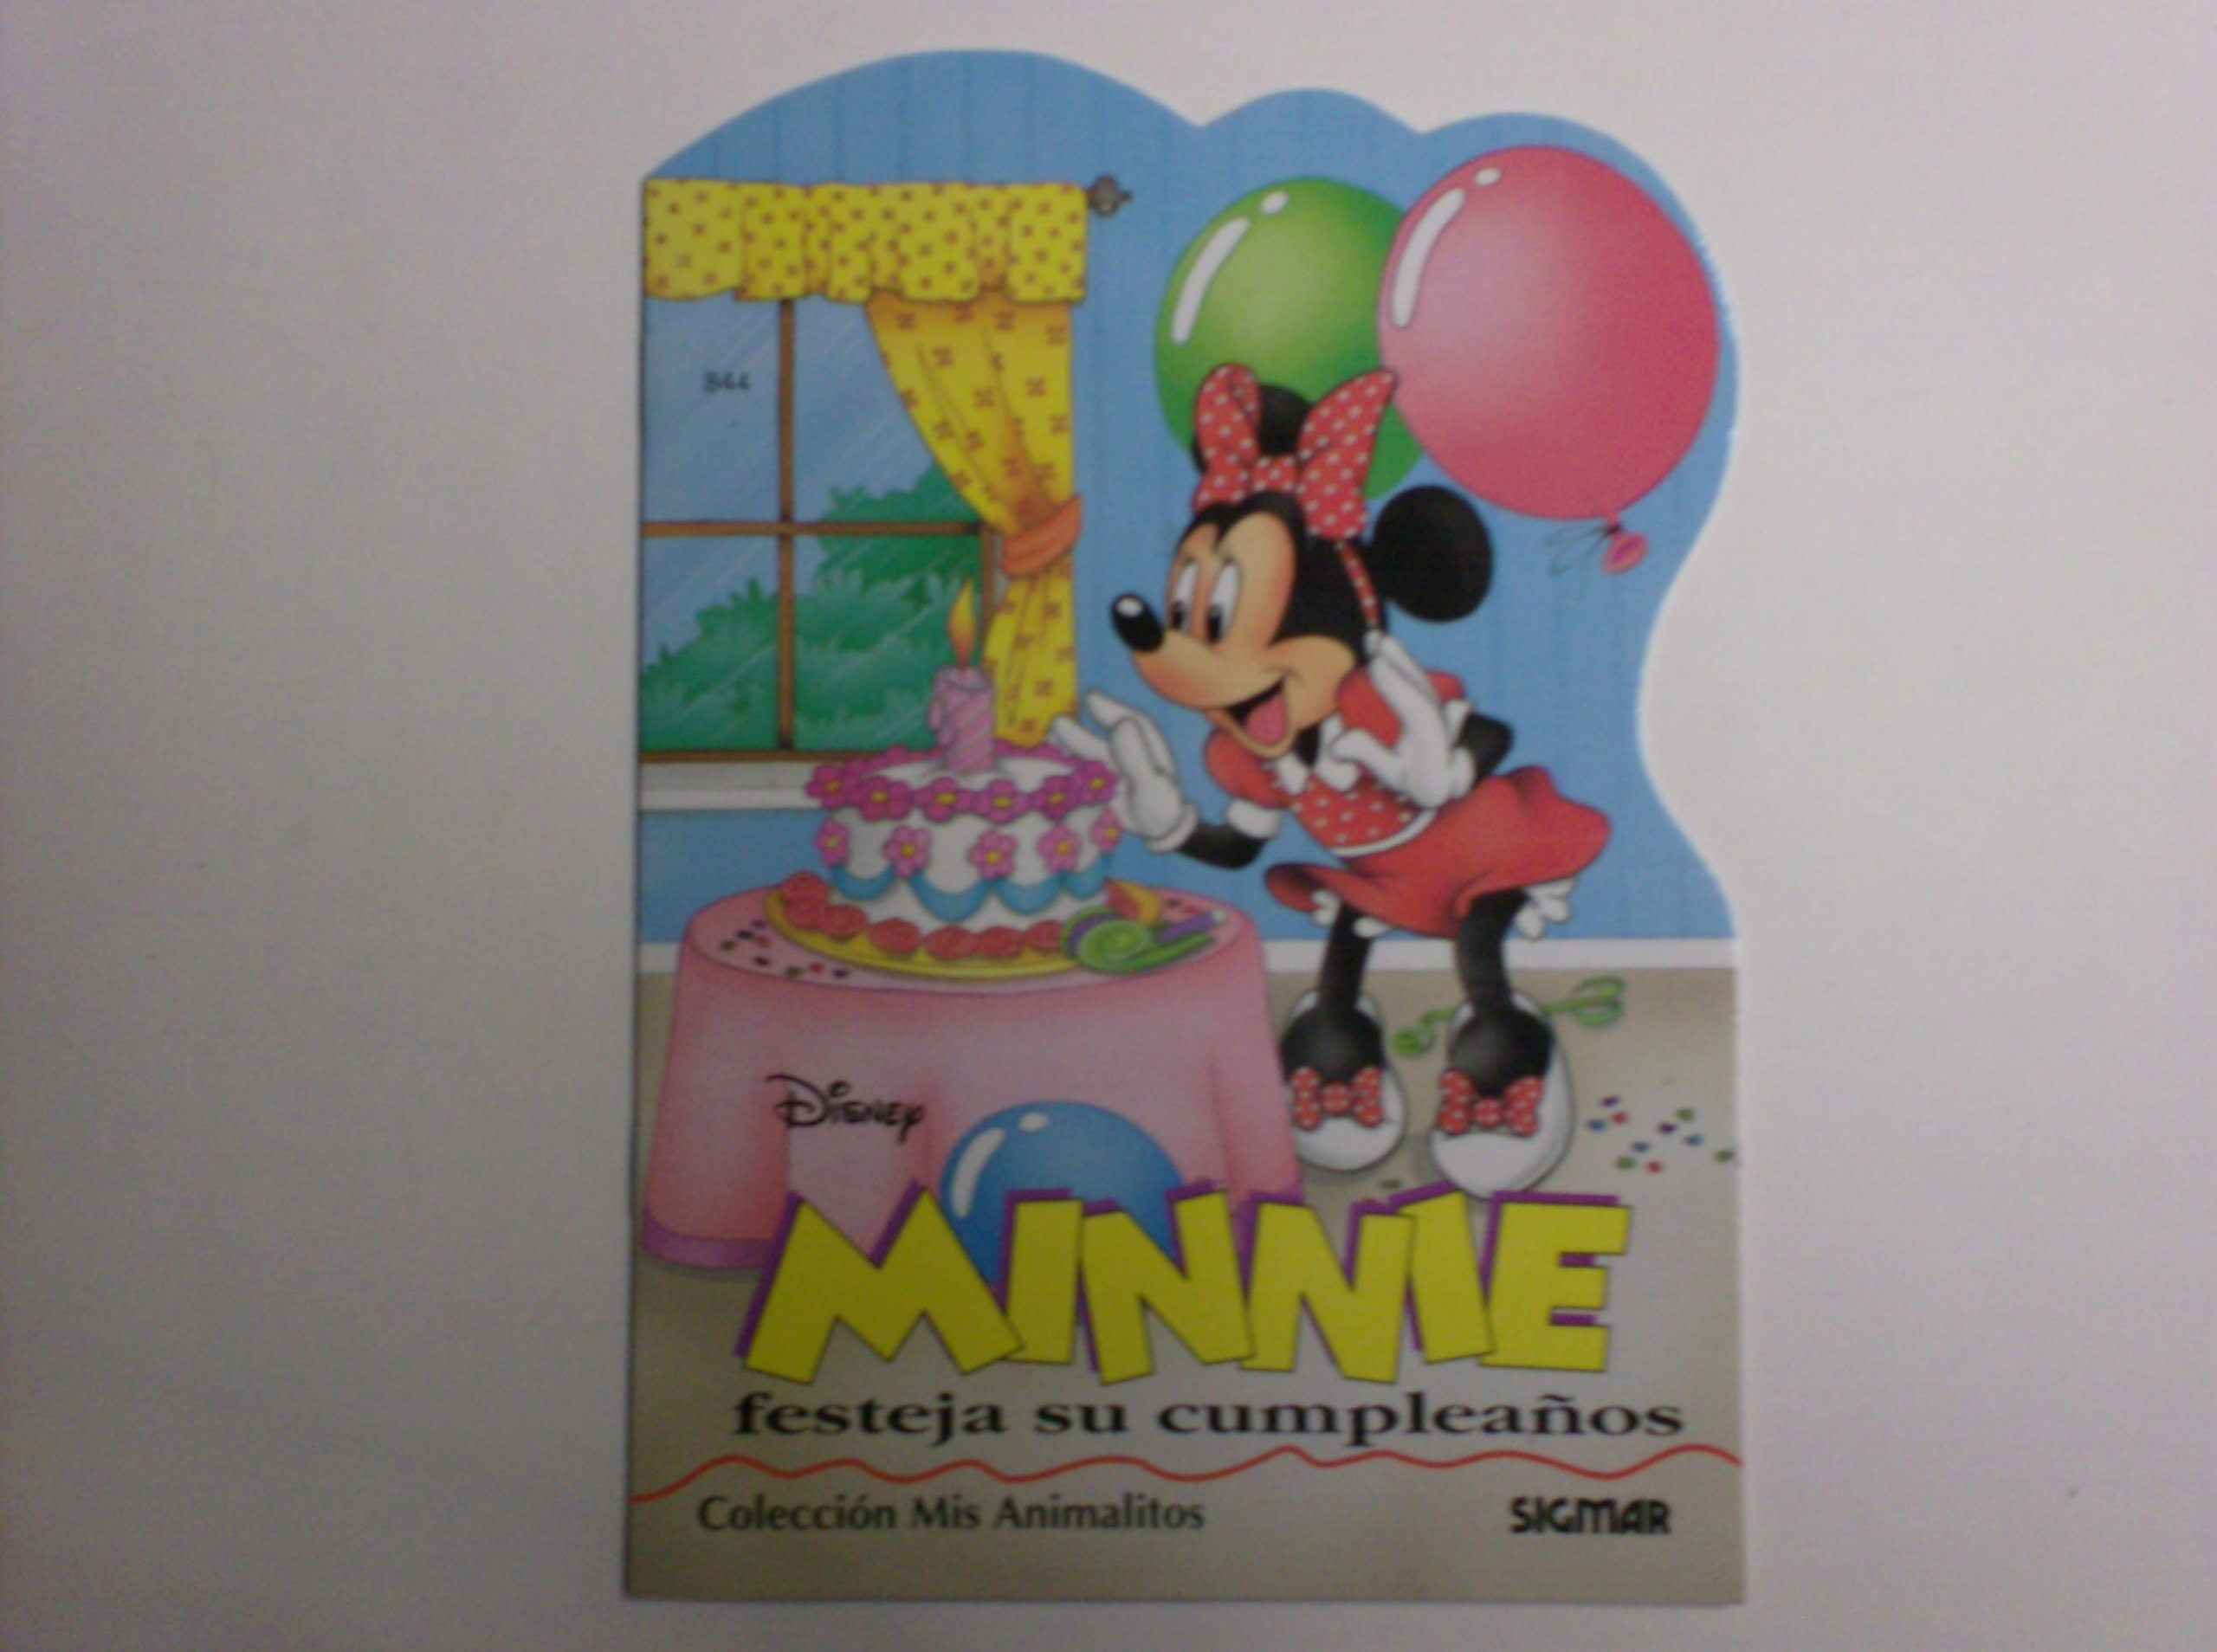 Minnie festeja su cumpleanos/ Minnie celebrates her birthday ...